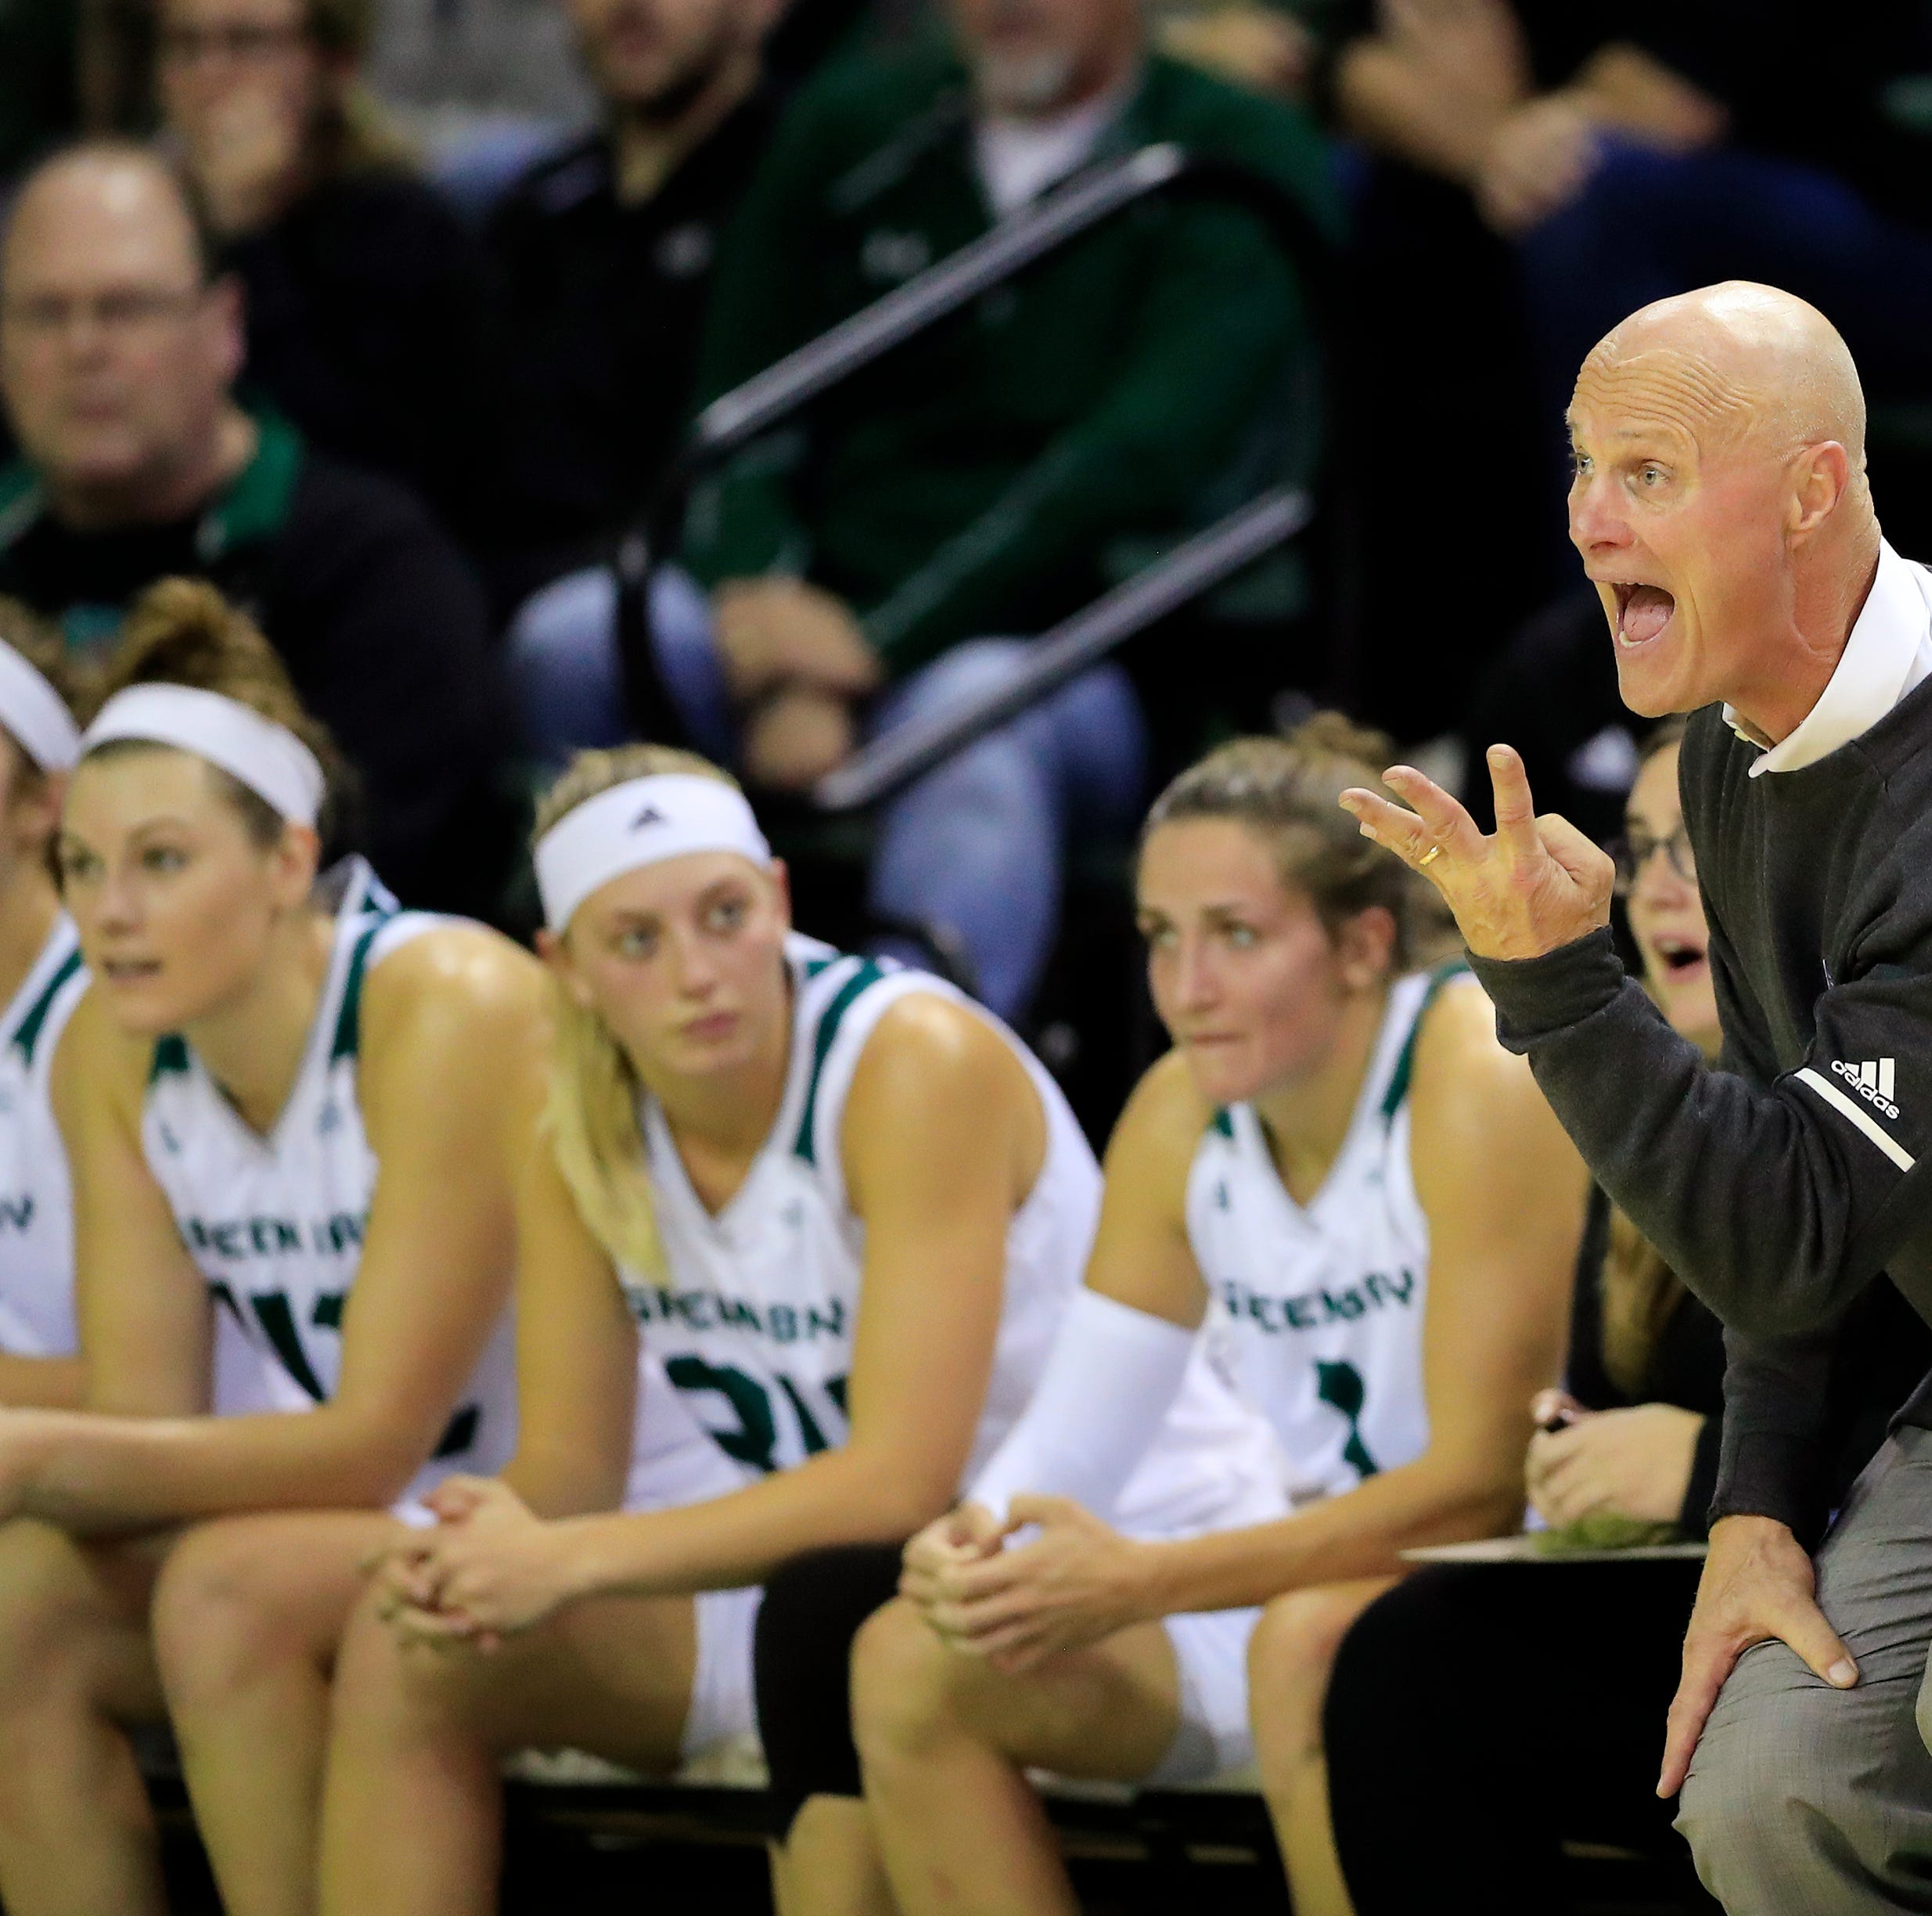 UWGB women's basketball: Phoenix returns to winning ways